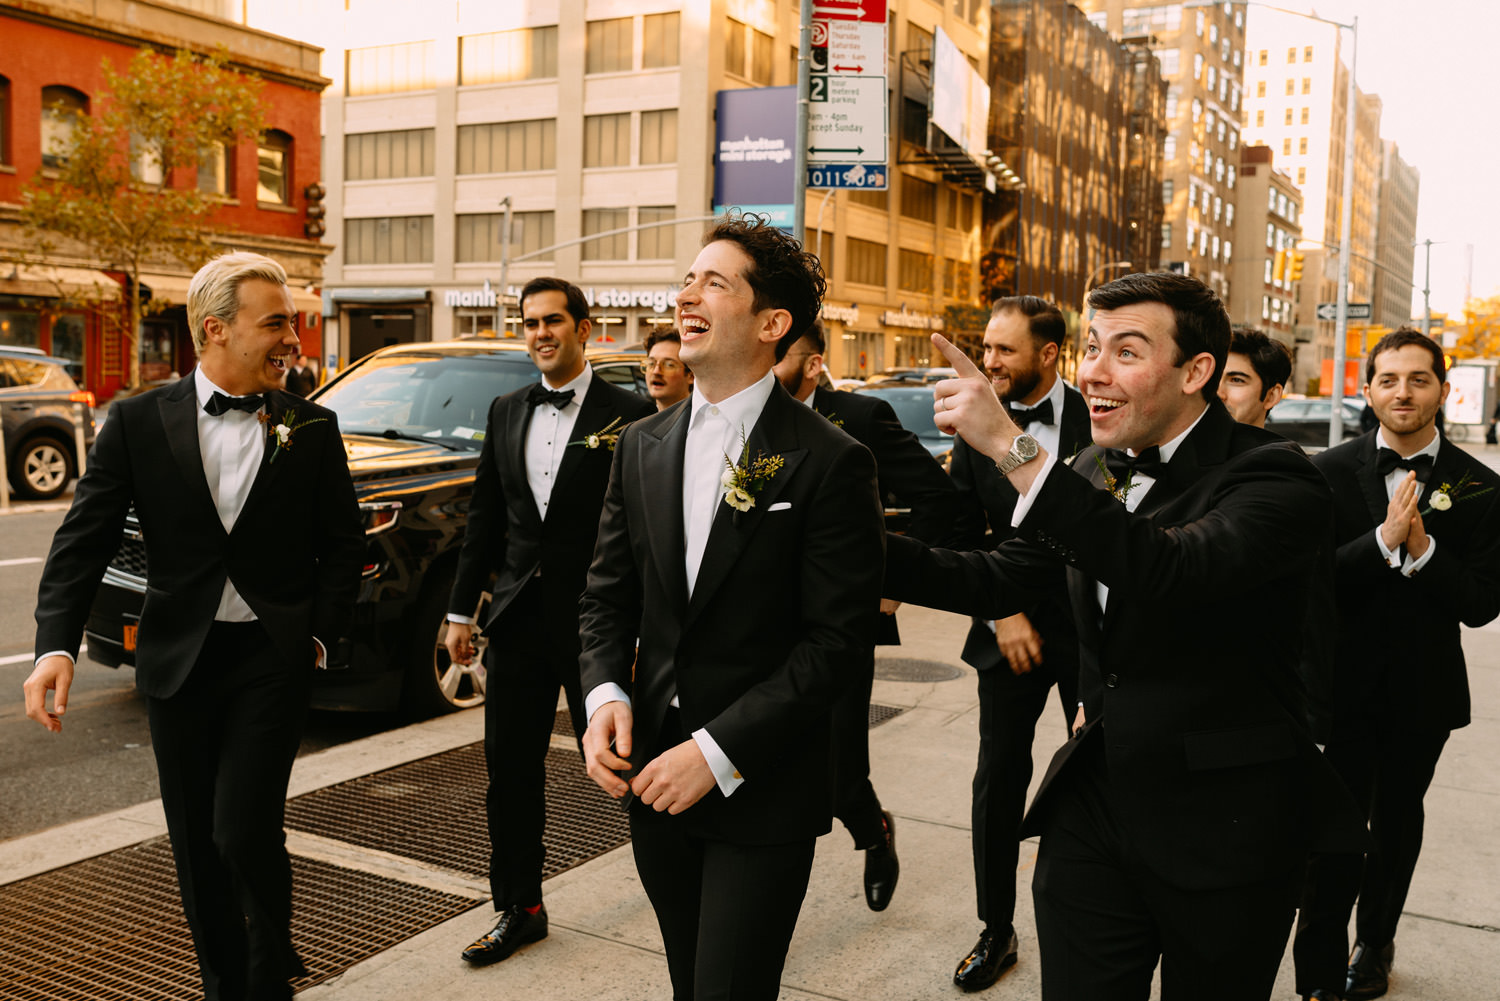 the groom and witnesses on the street in New York City